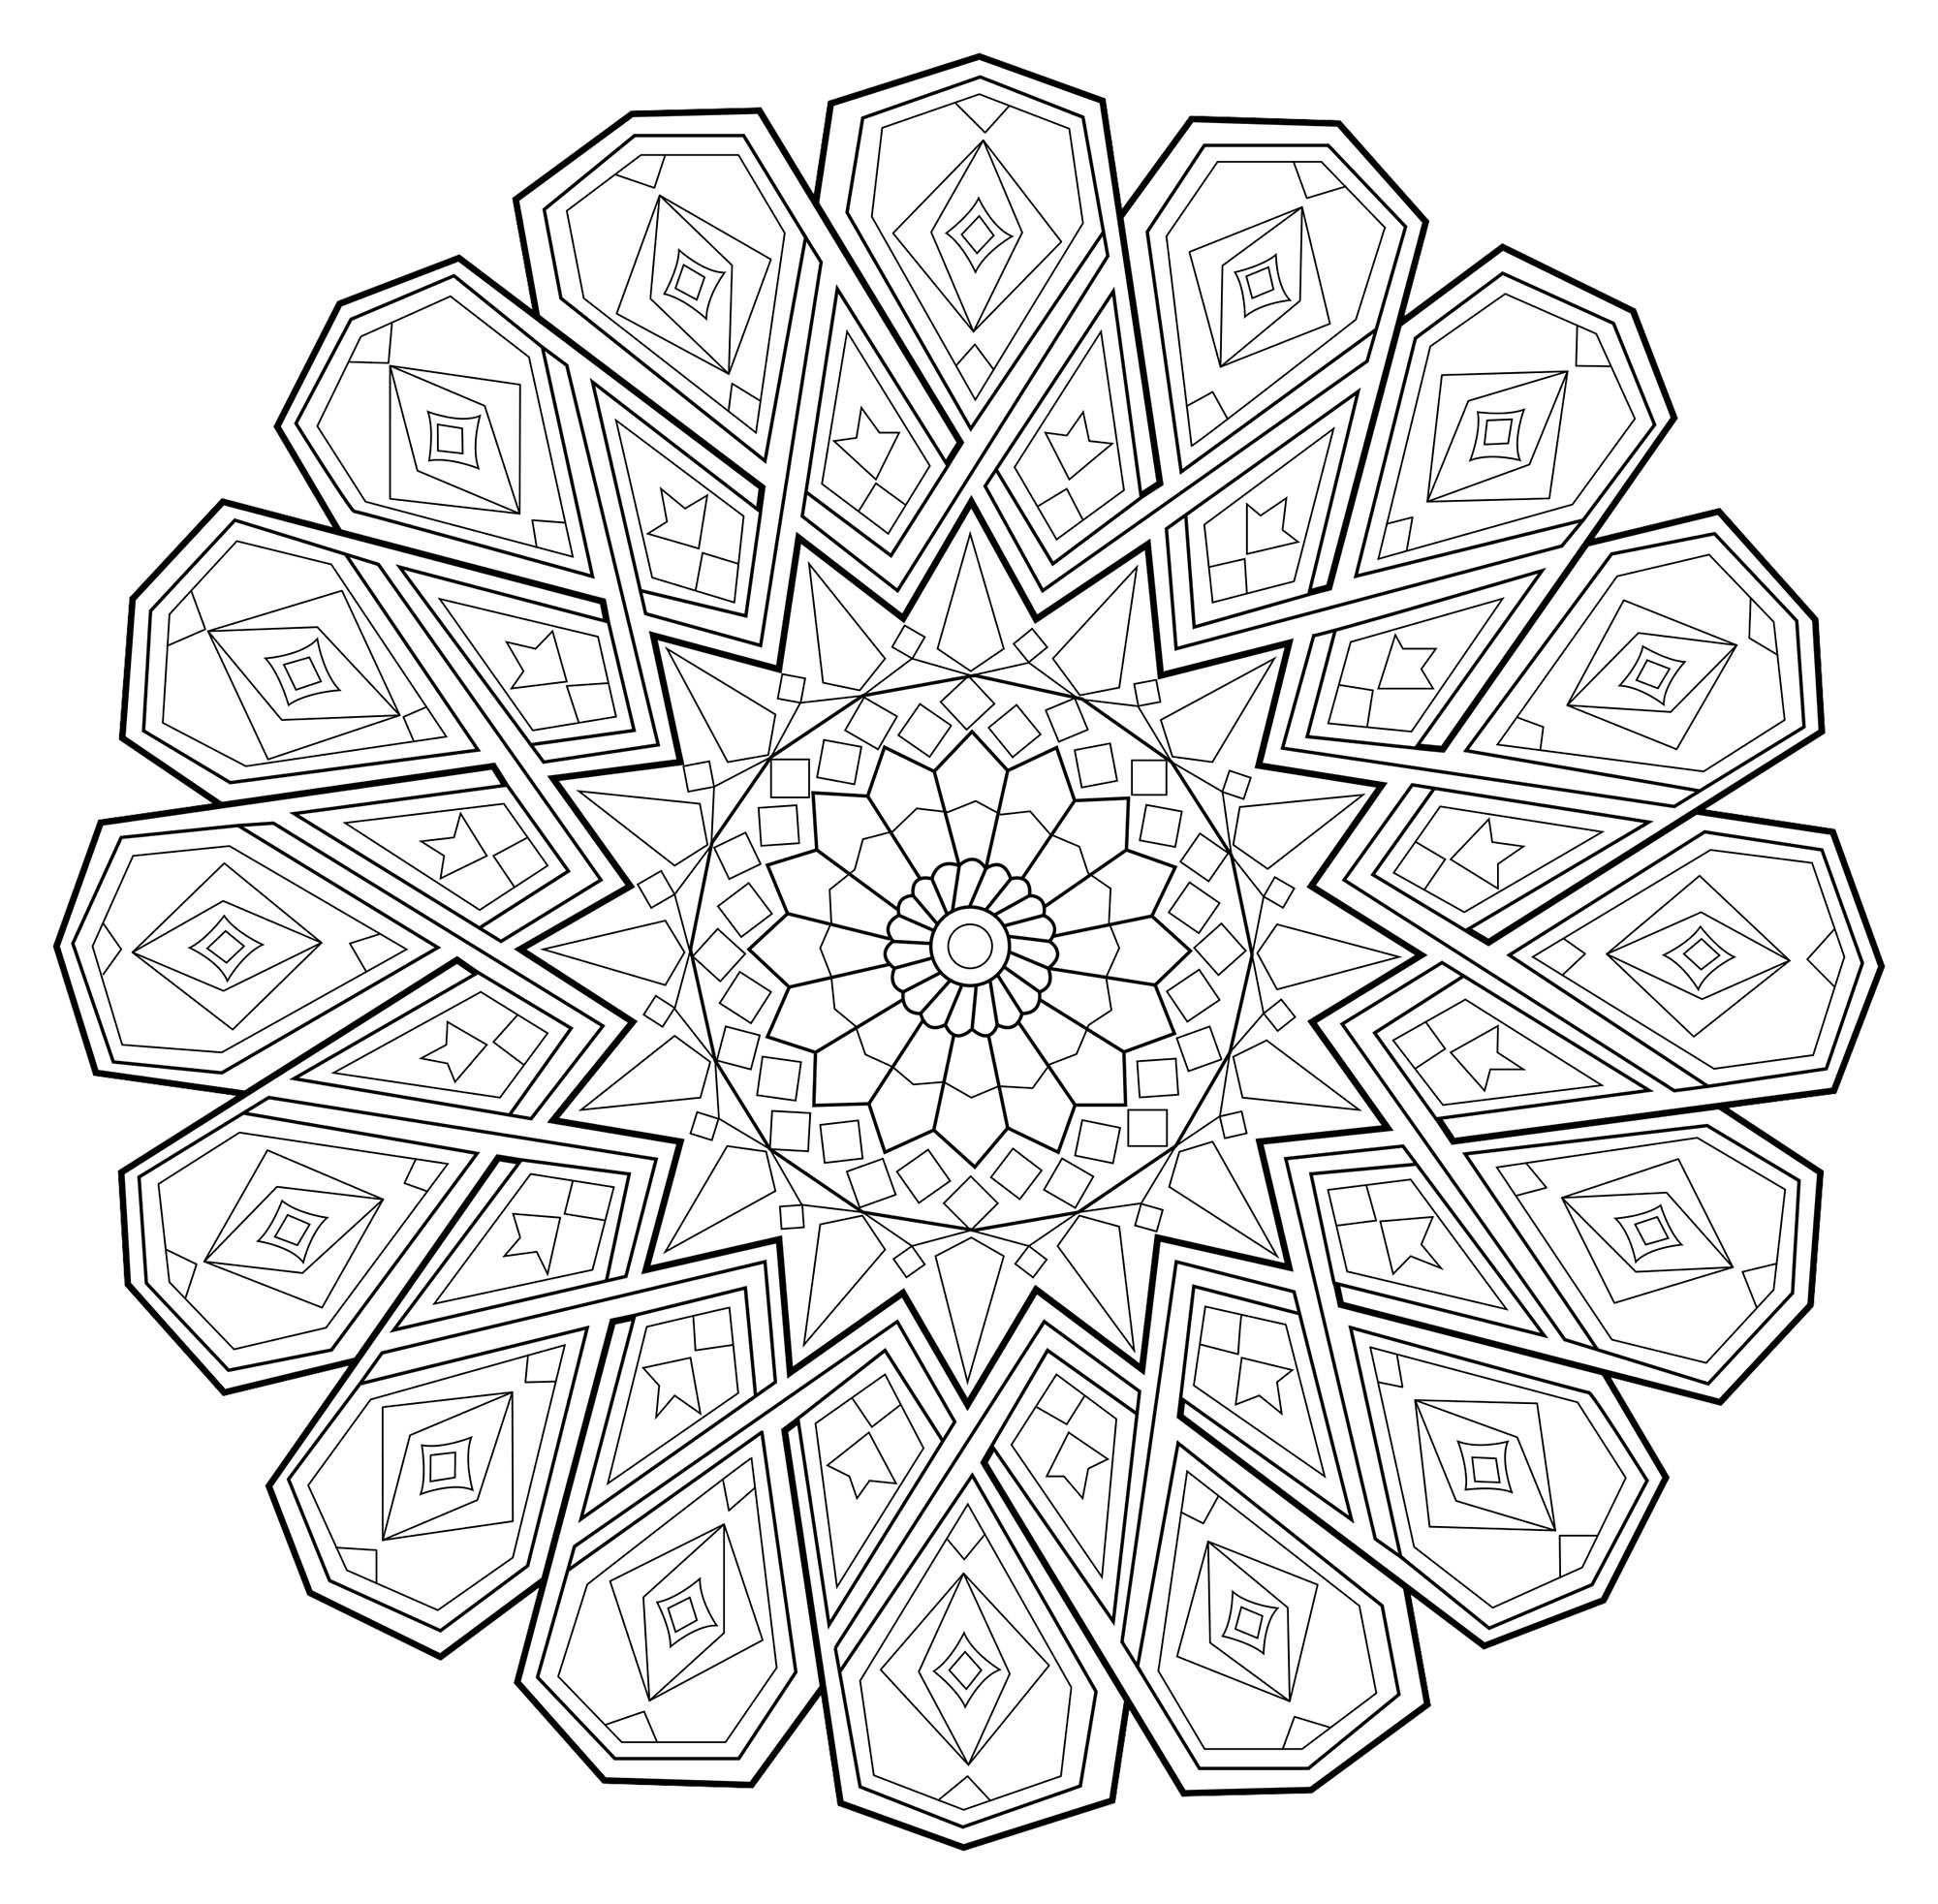 Mandala zen antistress 1 mandalas coloriages - Anti coloriage ...